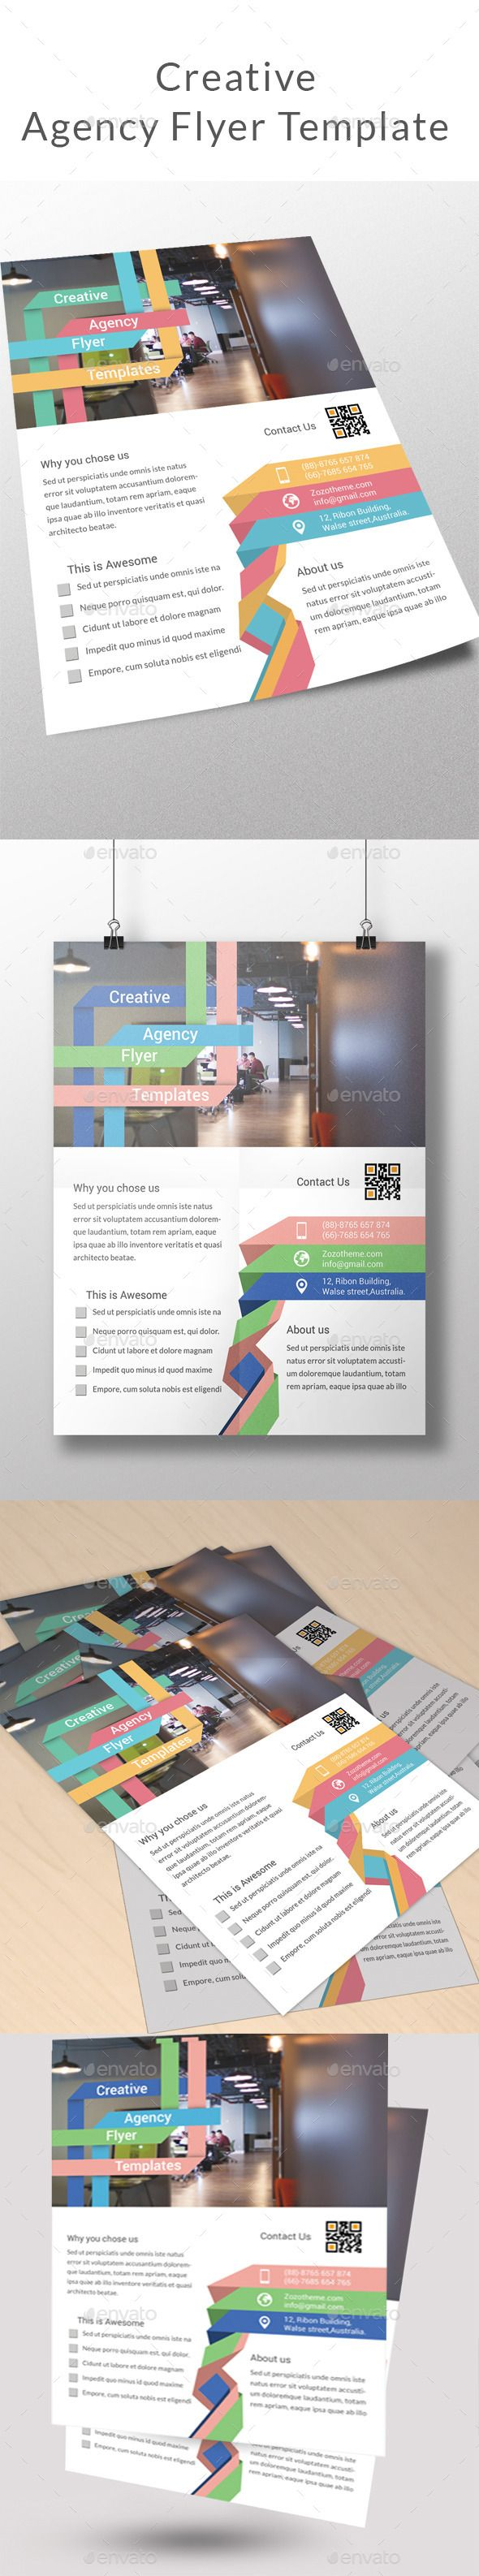 Creative Agency Flyer Template - Corporate Flyers